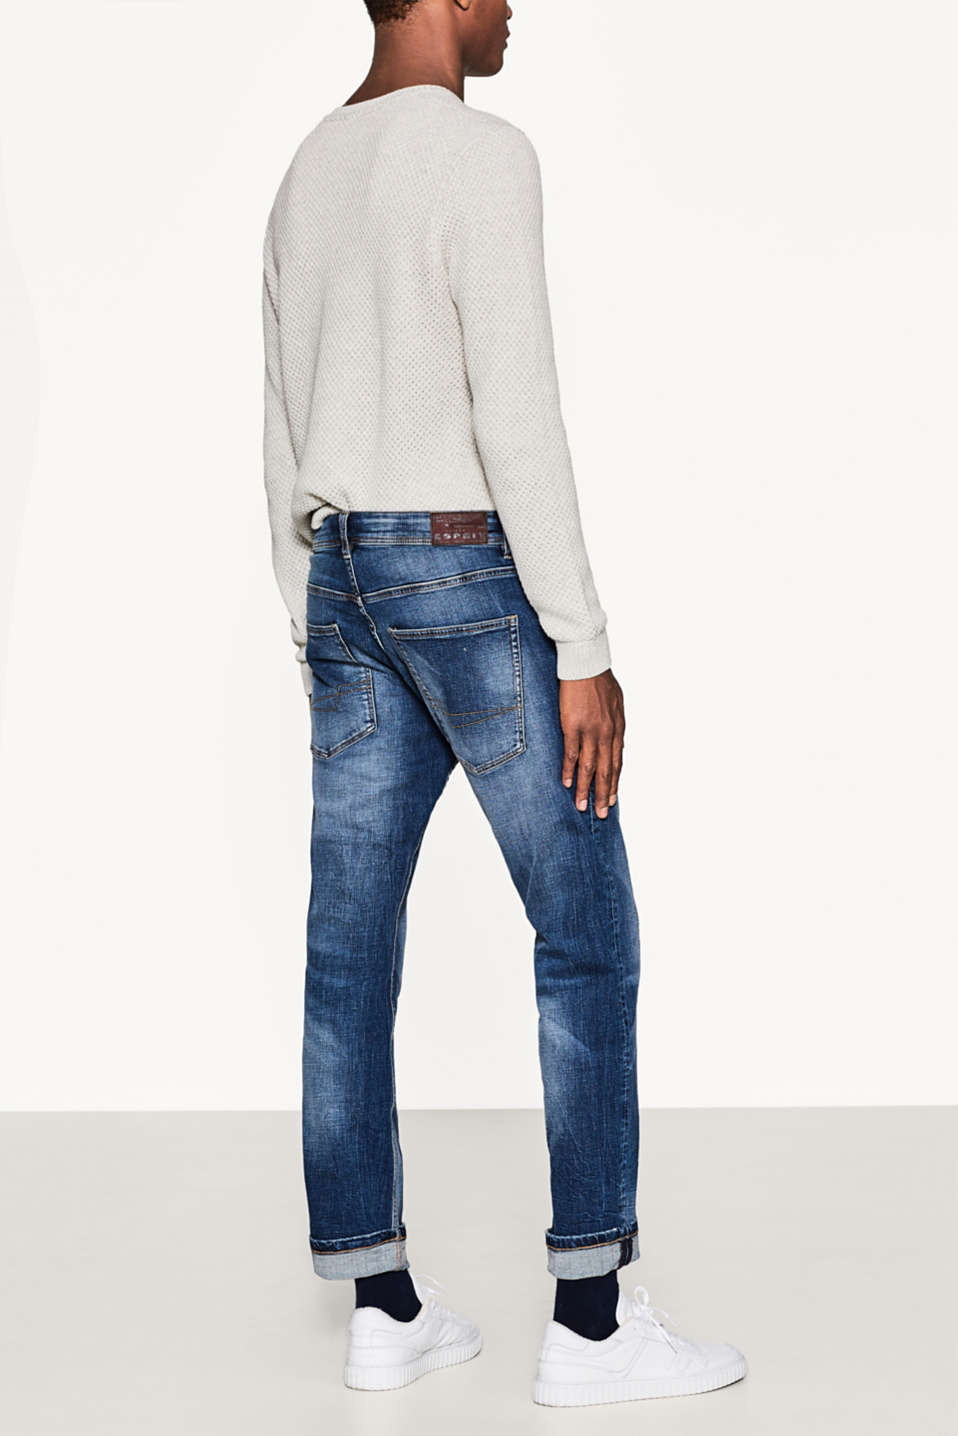 Stretch jeans in a vintage garment wash